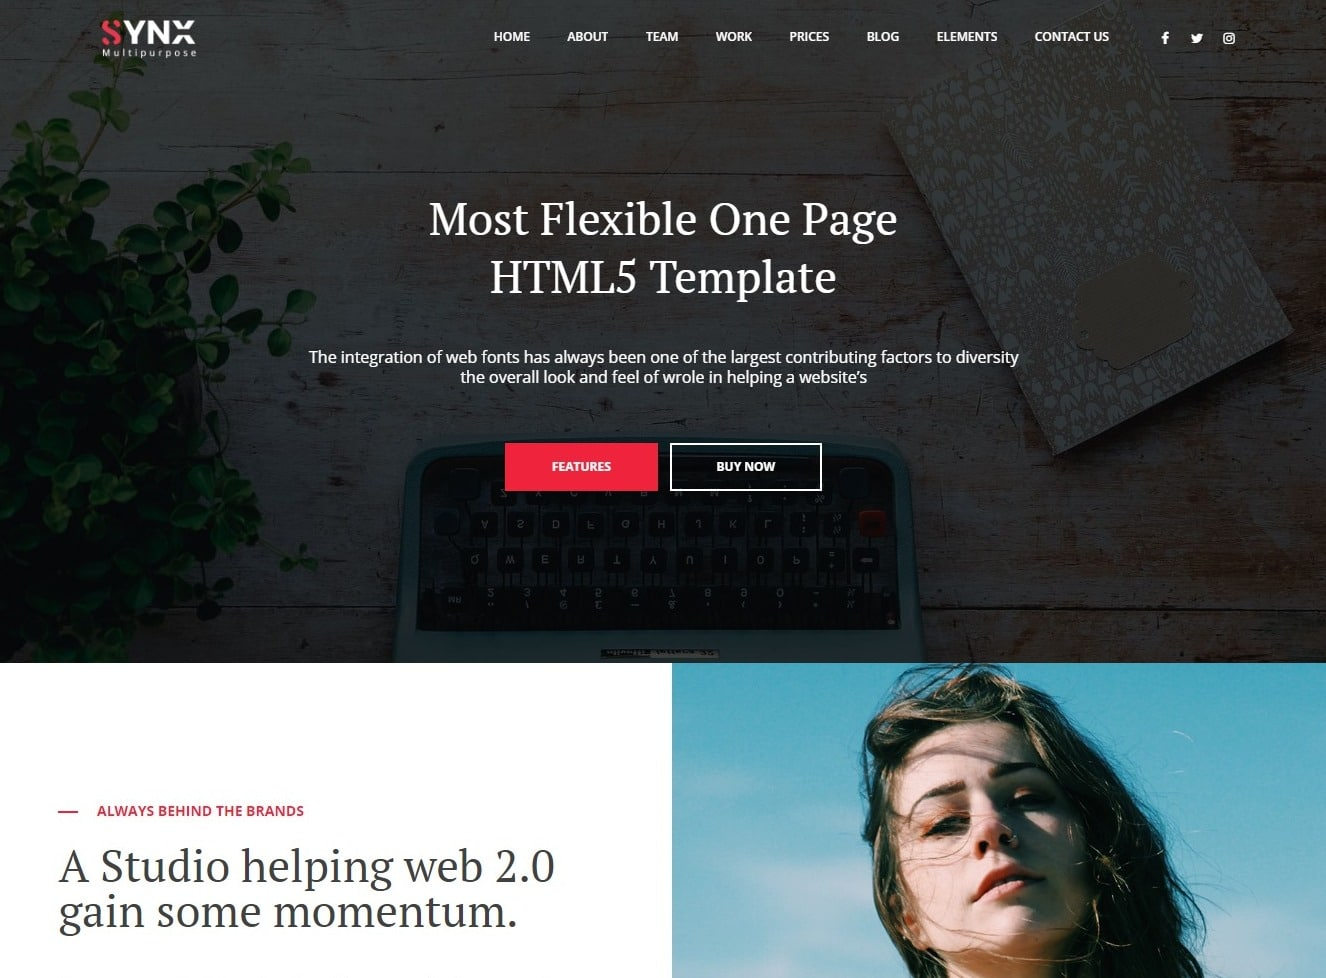 synx-one-page-website-template